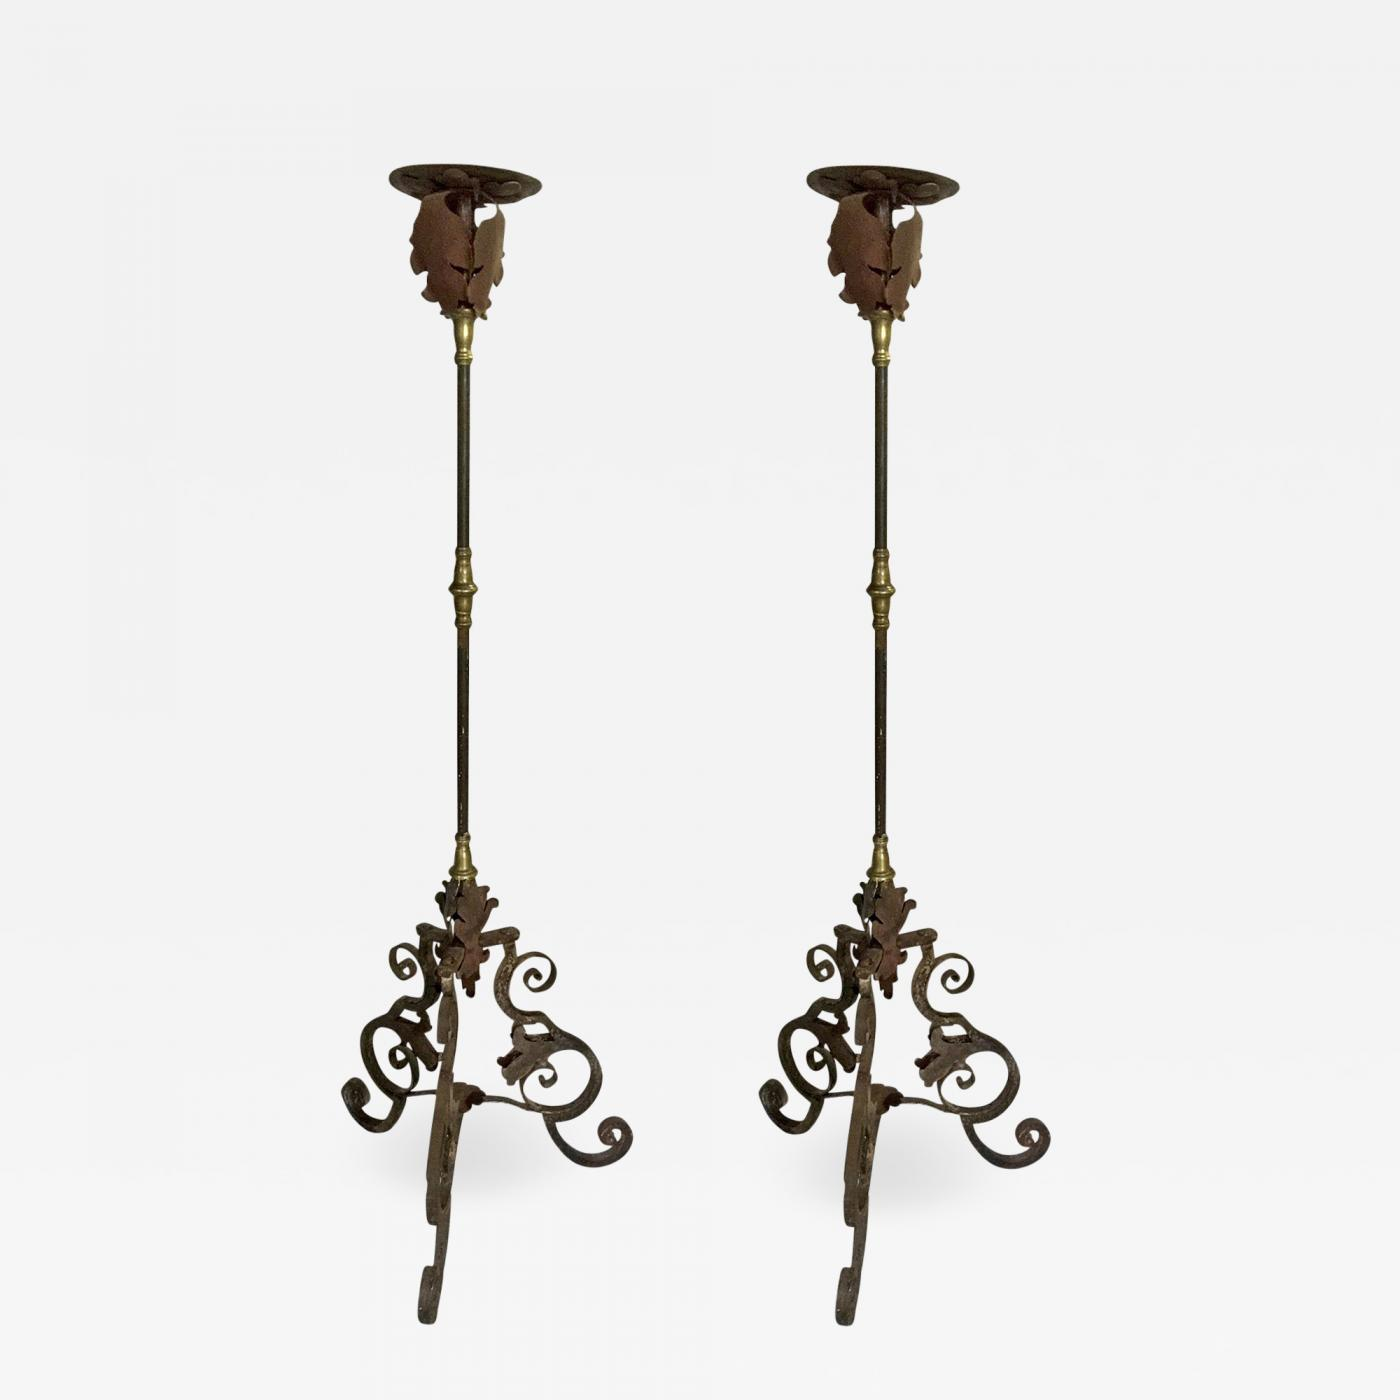 new product a44e7 9657c Pair of Wrought Iron Floor Lamps